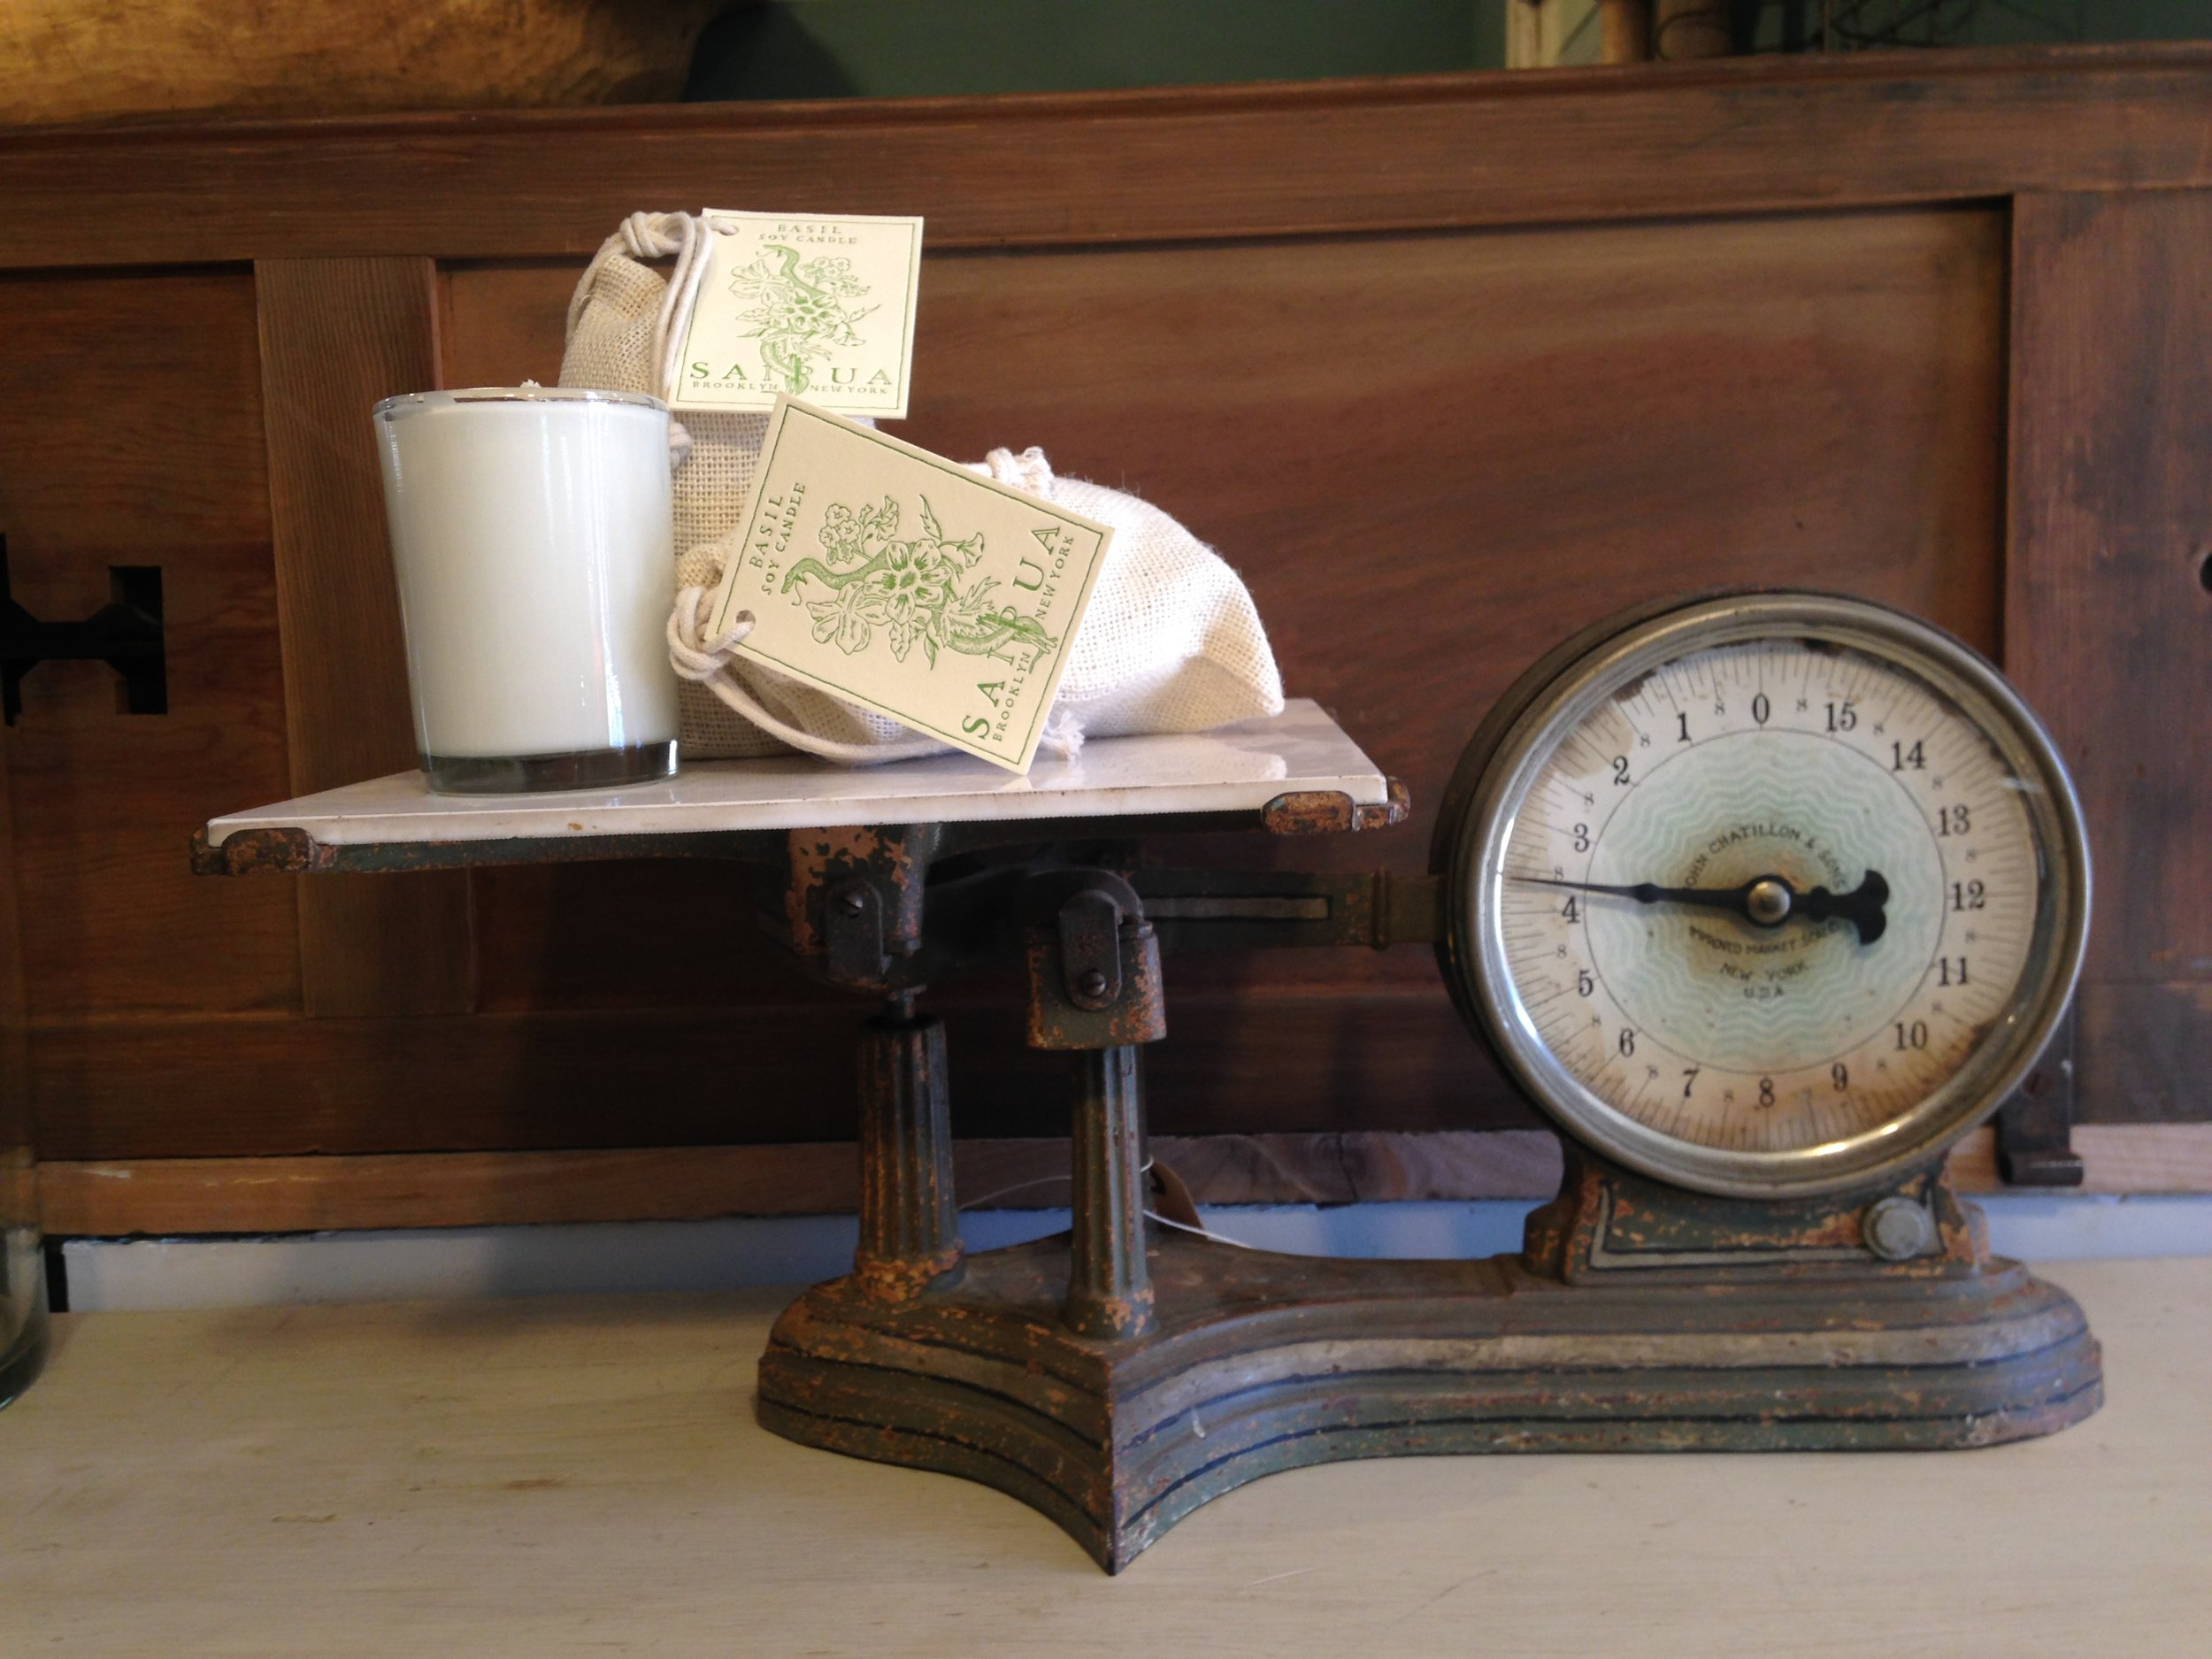 Vintage kitchen scales are an essential accessory. However,  like potato chips you cant have just one.